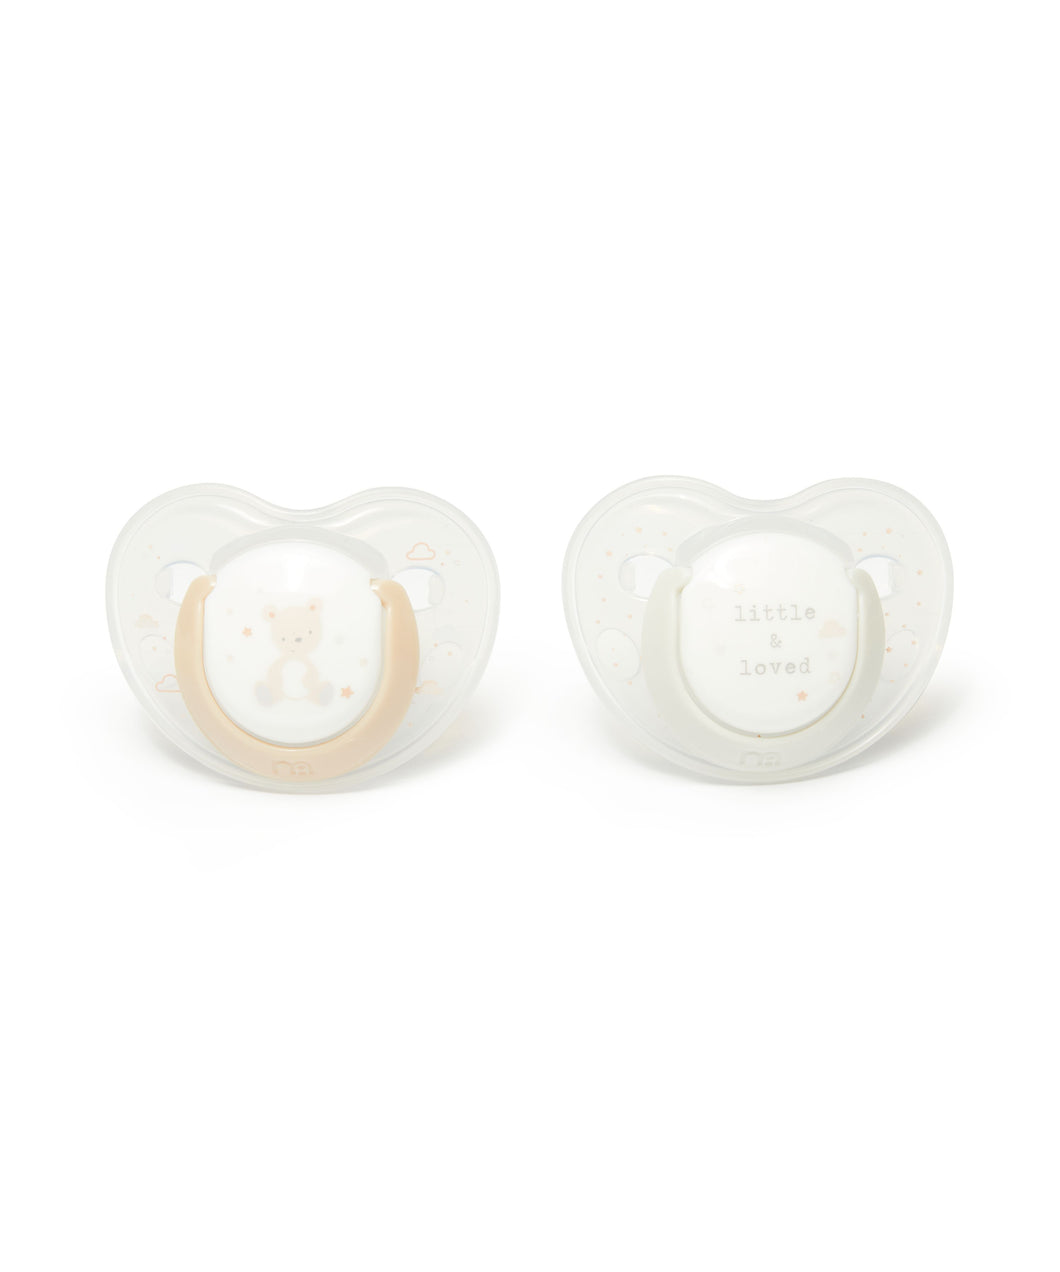 mothercare 0-6m orthodontic soothers 2 pack - teddy